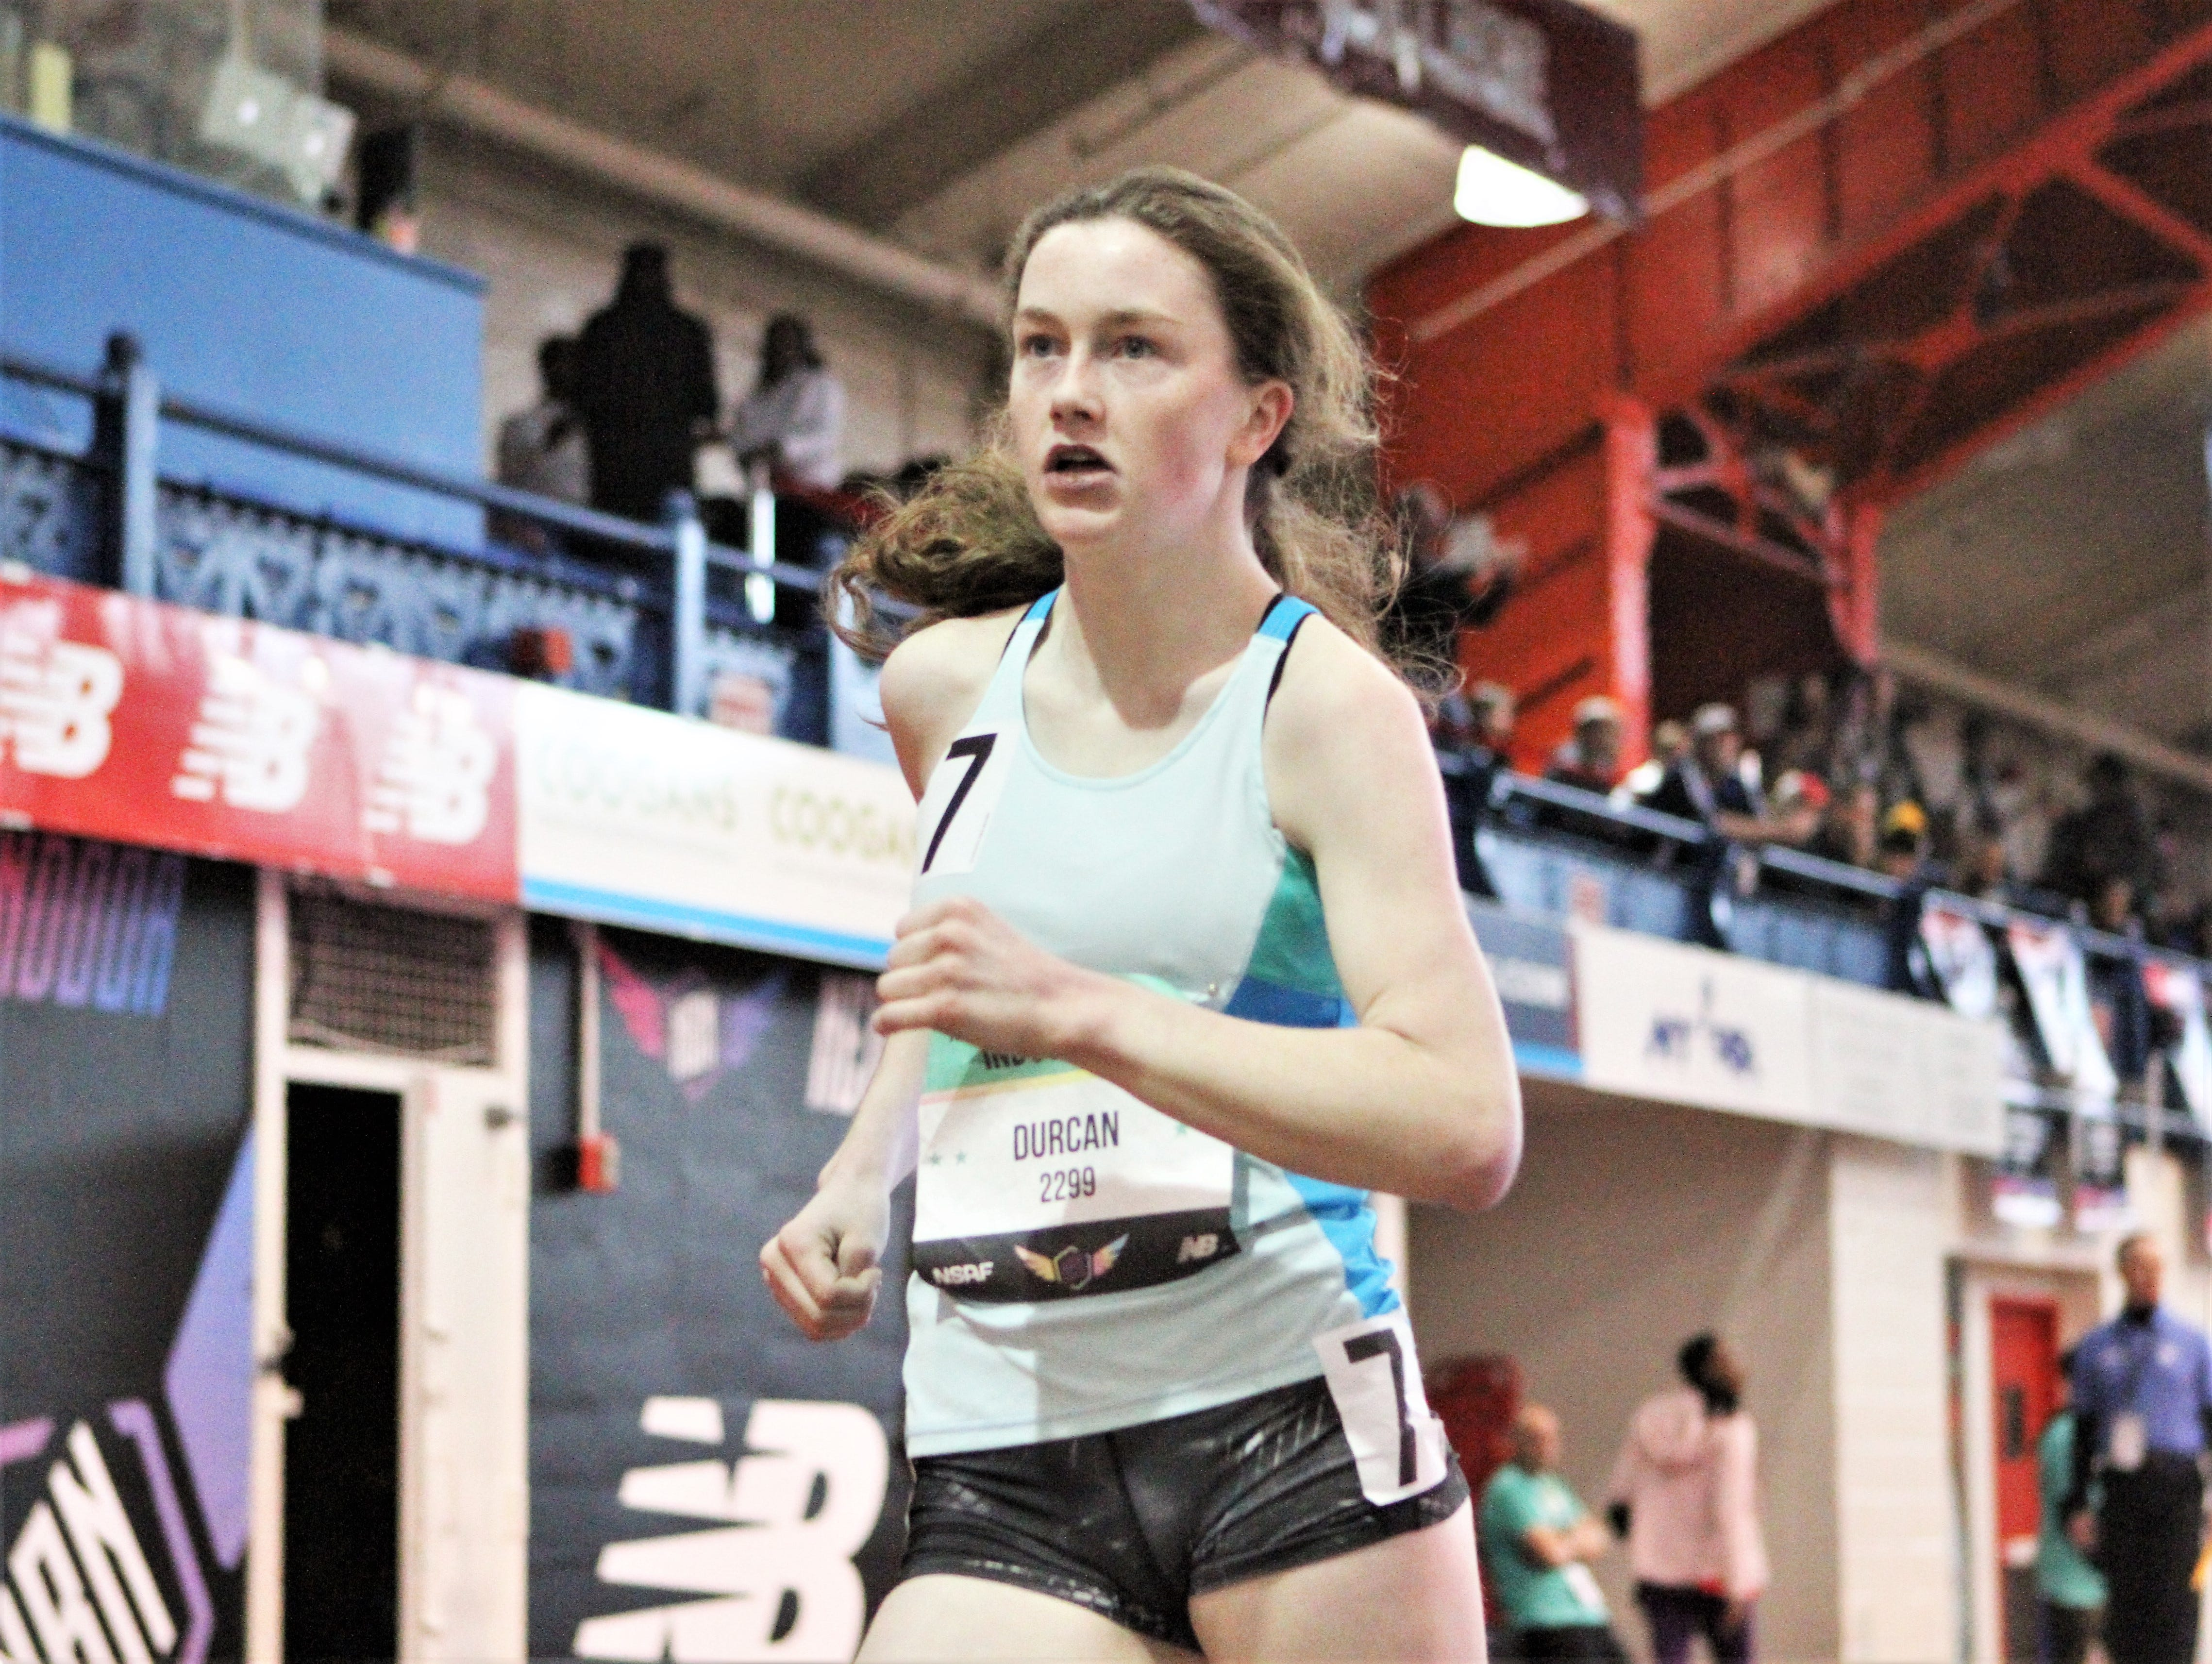 Video: Pearl River's Ciara Durcan after taking silver in winter Nationals racewalk